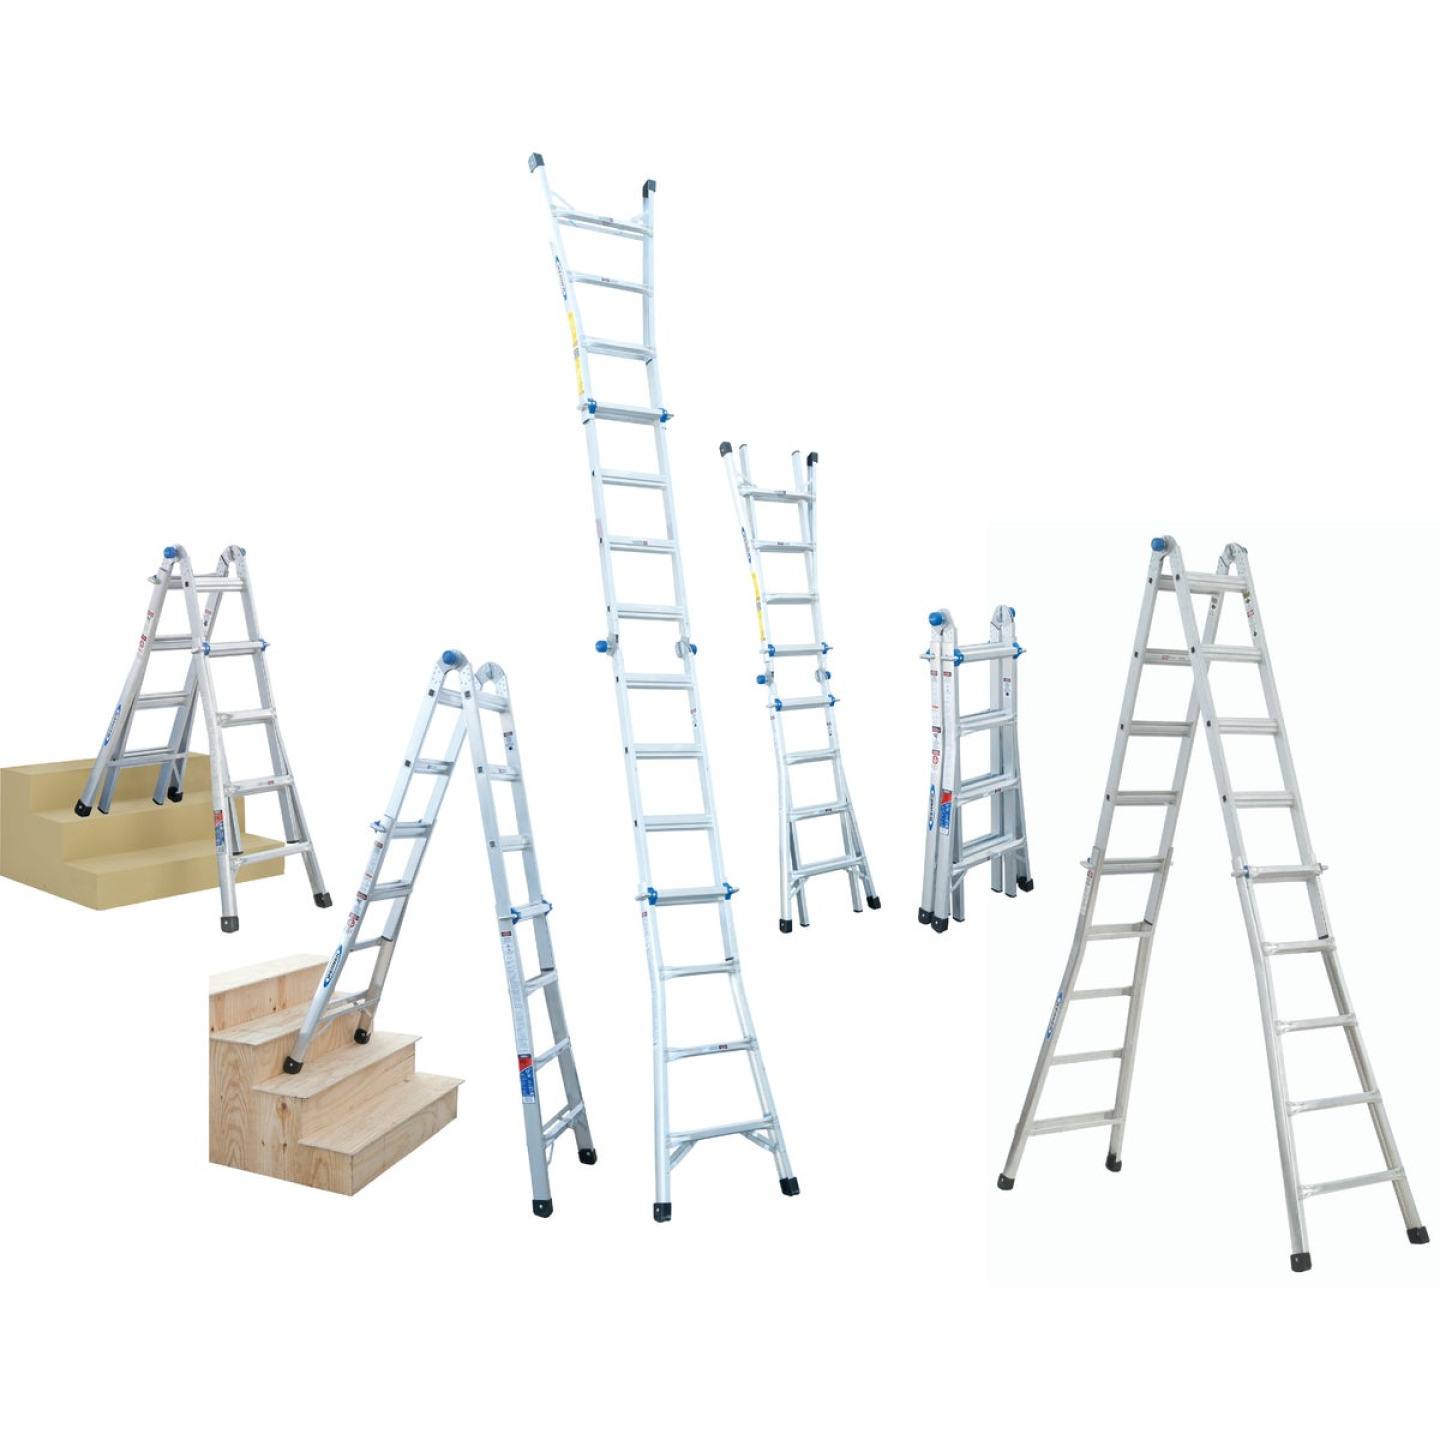 Werner 17 Ft. Aluminum Multi-Position Telescoping Ladder with 300 Lb. Load Capacity Type IA Ladder Rating Image 1